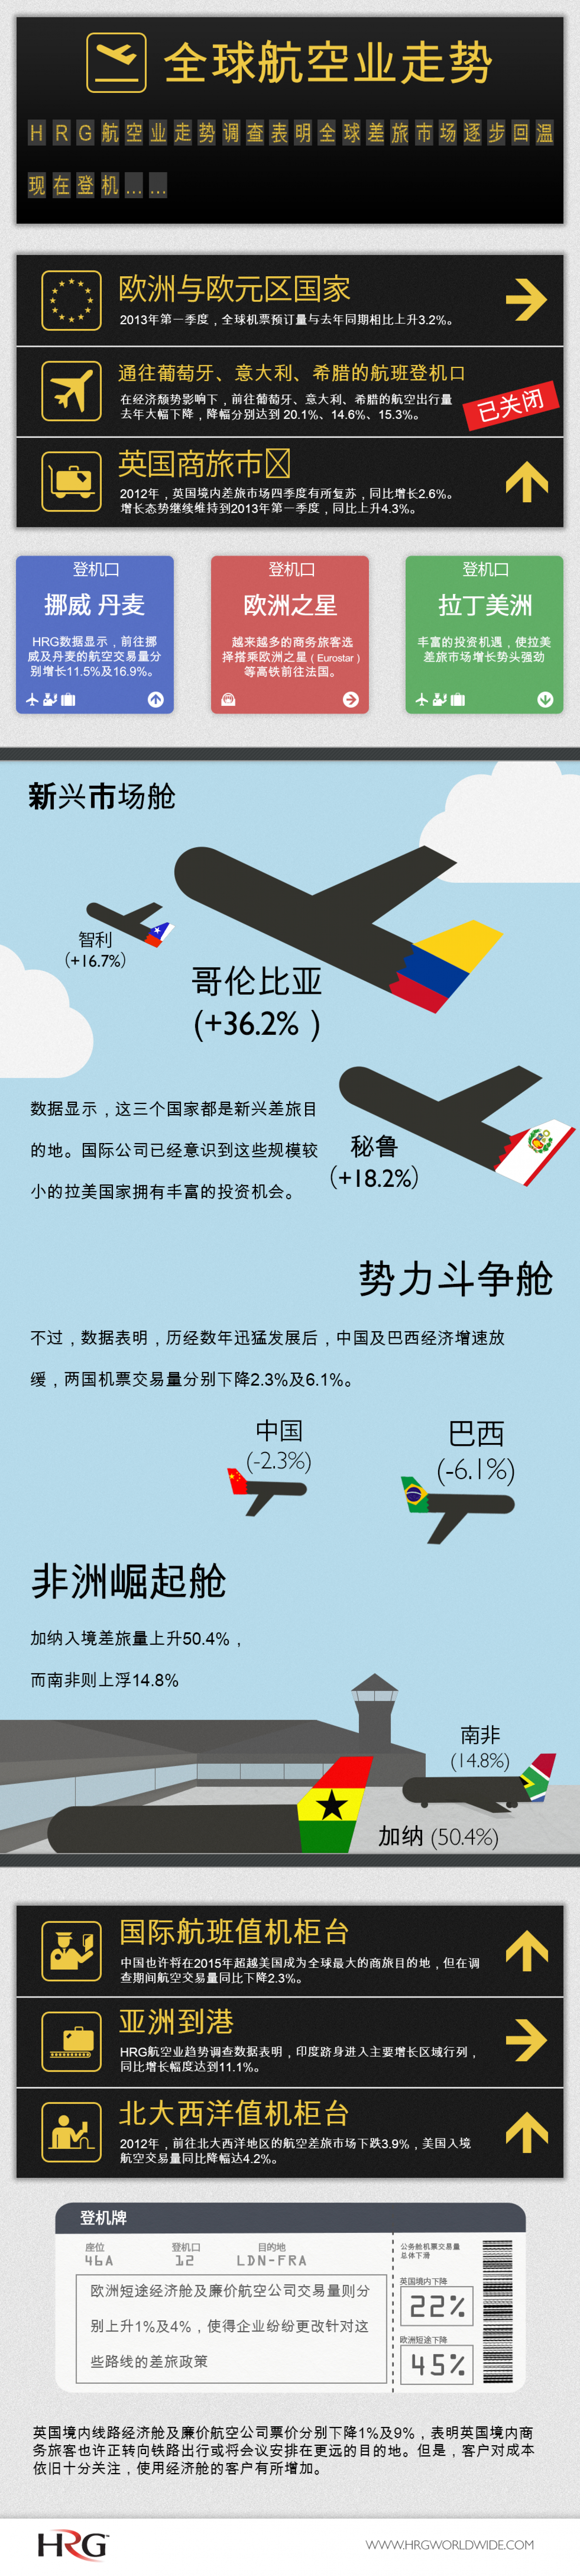 HRG - Air Trends (Mandarin Version) Infographic